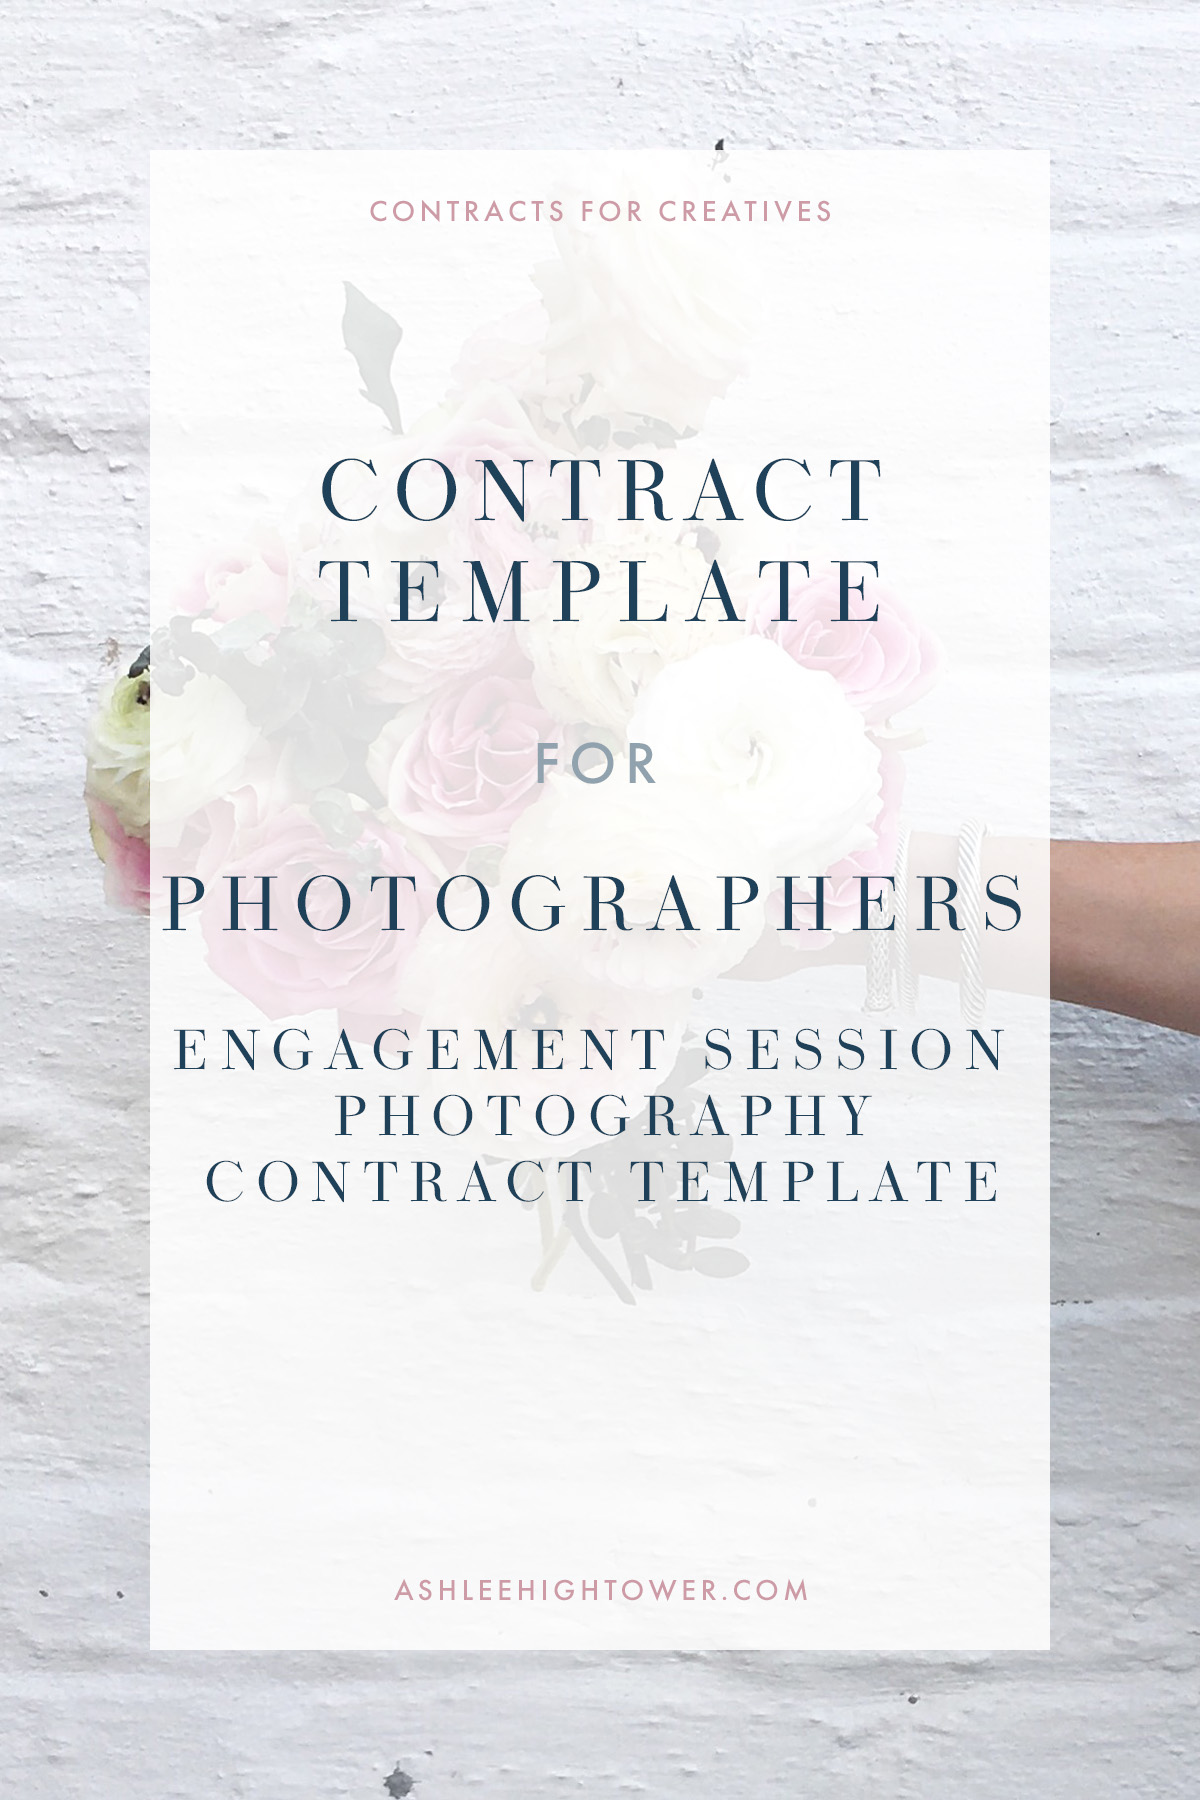 Contracts for Creatives | Photographer Engagement Session Contract Template | | Photographer Contracts | Ashlee Hightower